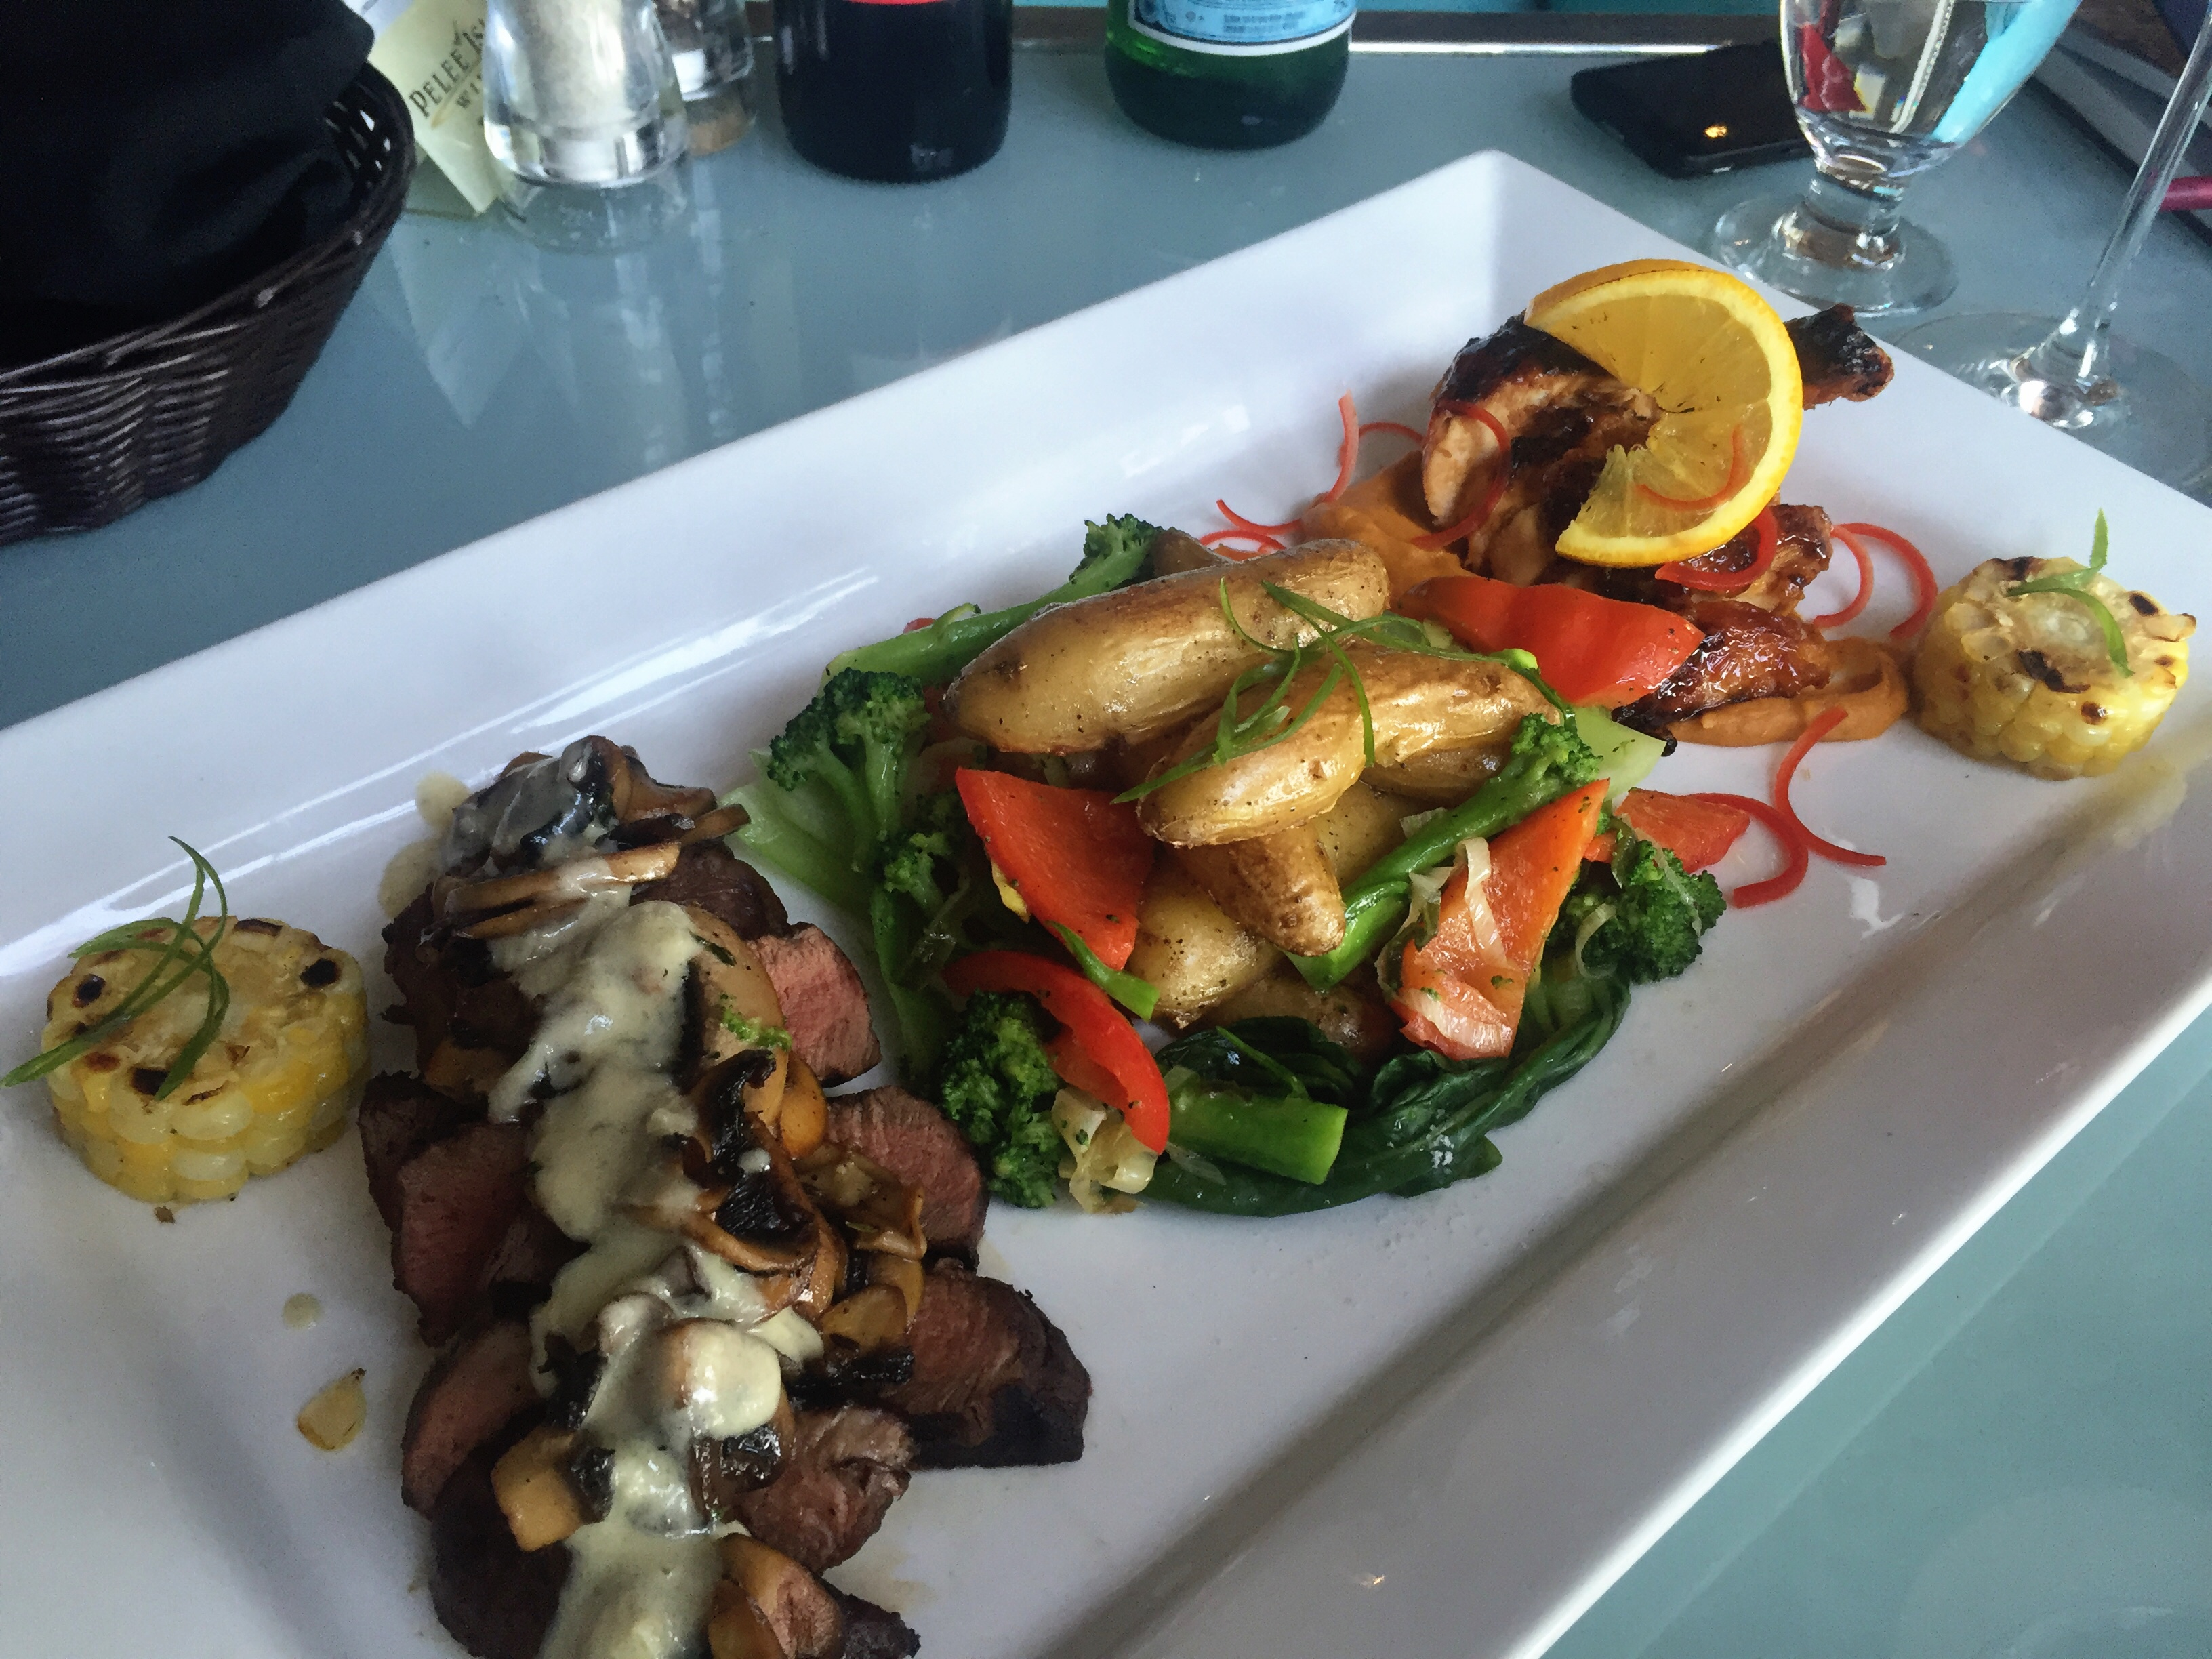 Fabulous steak, fresh produce and excellent chicken can be found on the menu at The Chilled Cork, located at the Retro Suites hotel in Chatham. JIM BYERS PHOTO